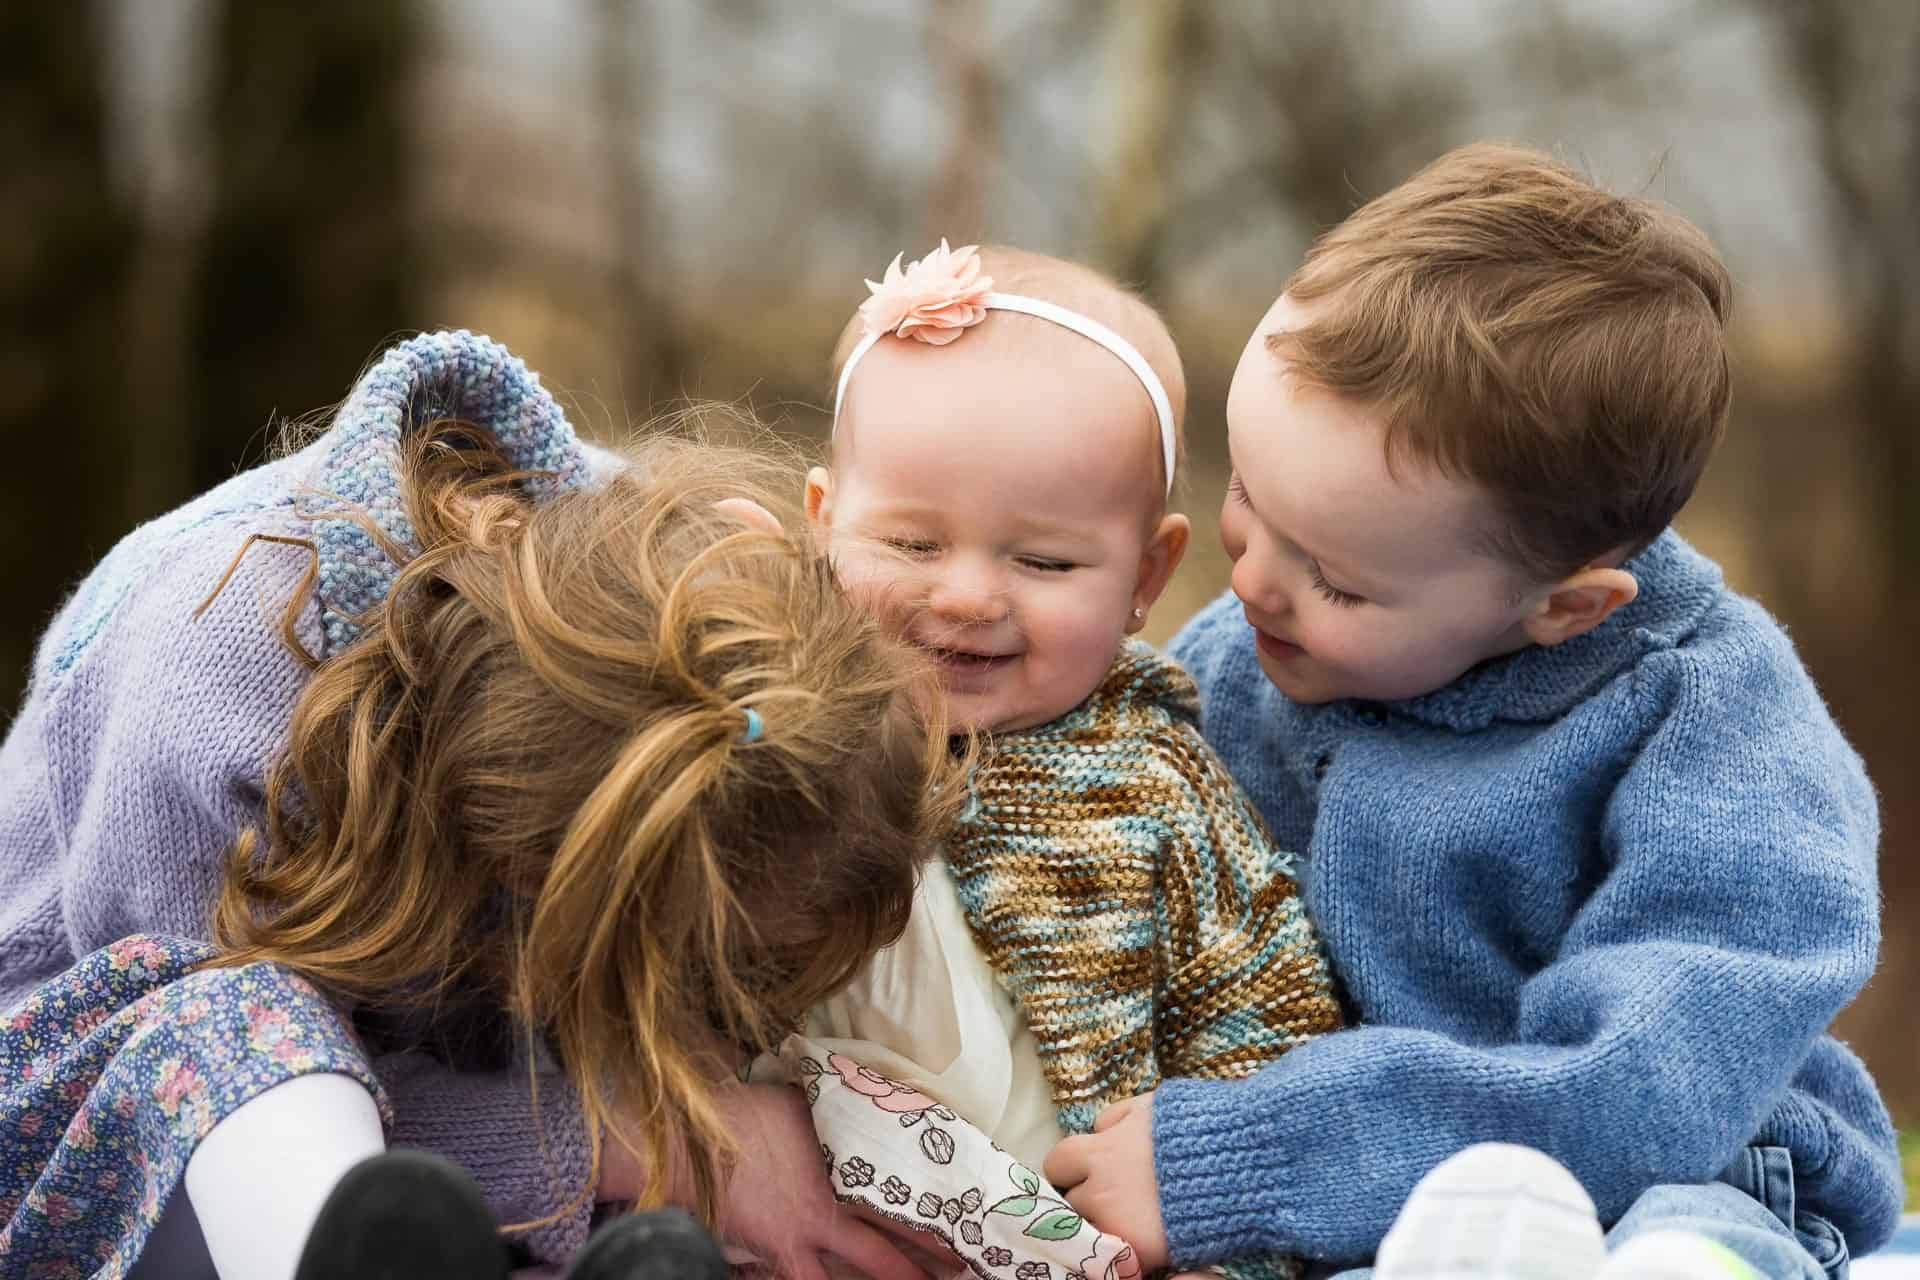 Three children hugging and laughing together